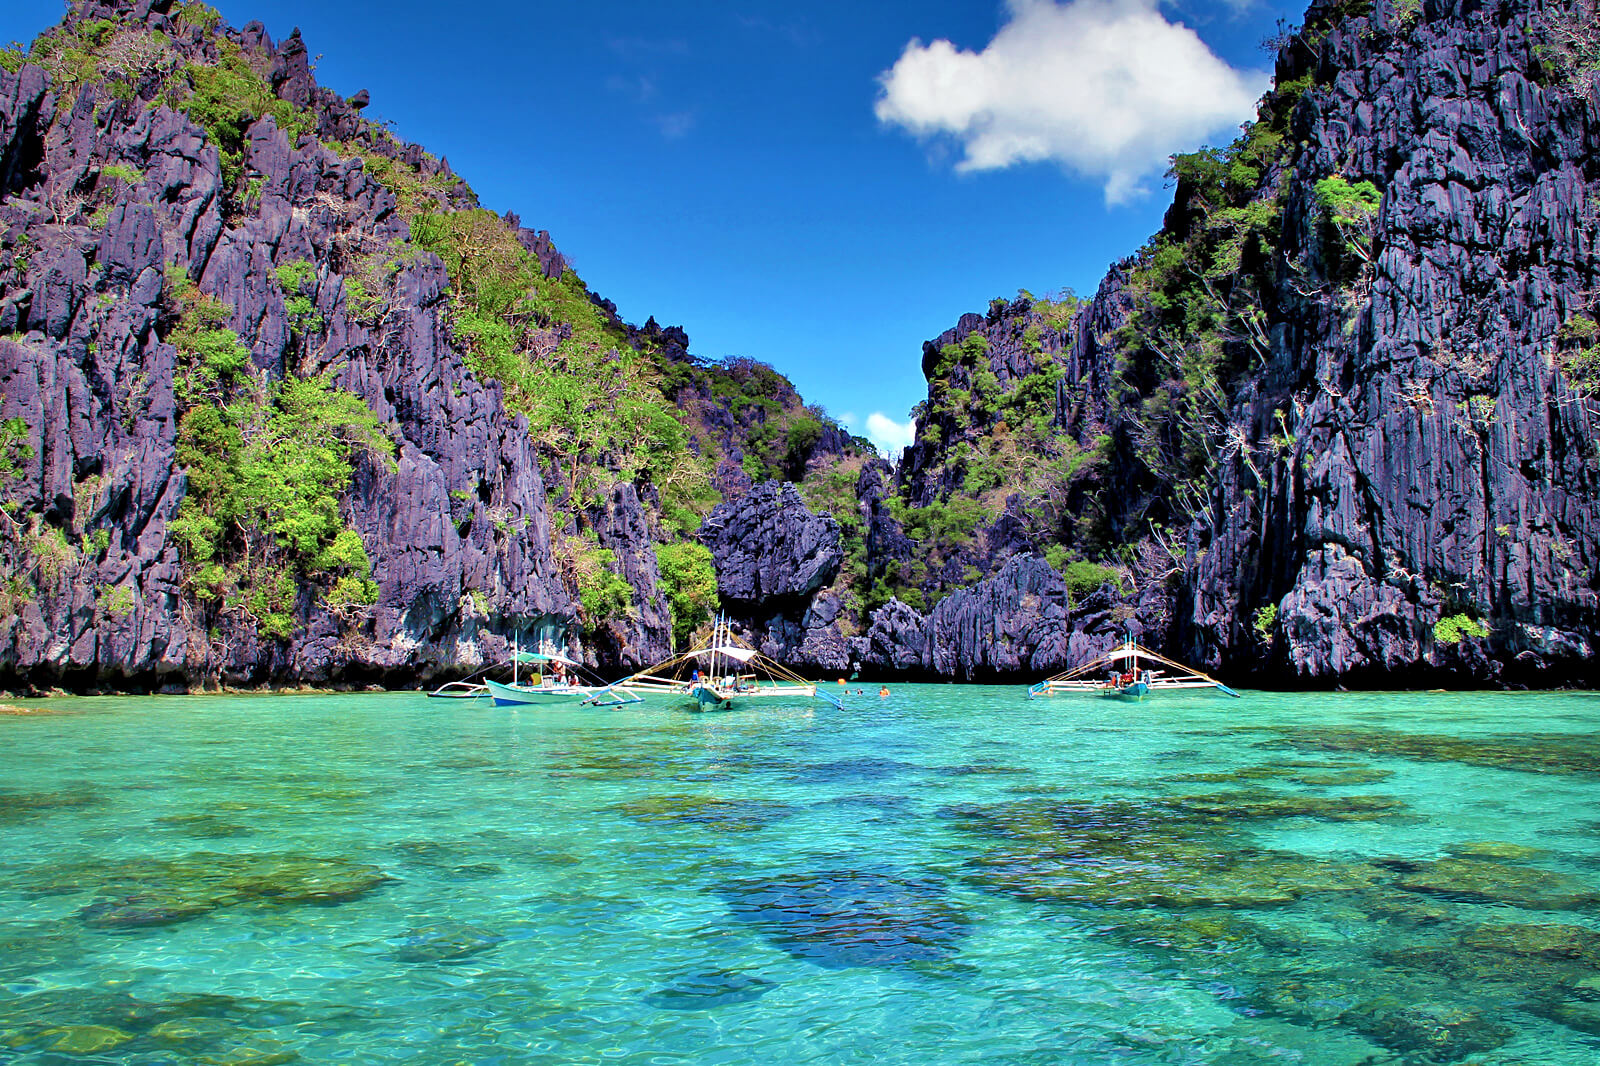 55 Best Islands In The World Revealed By Top Travel Writers